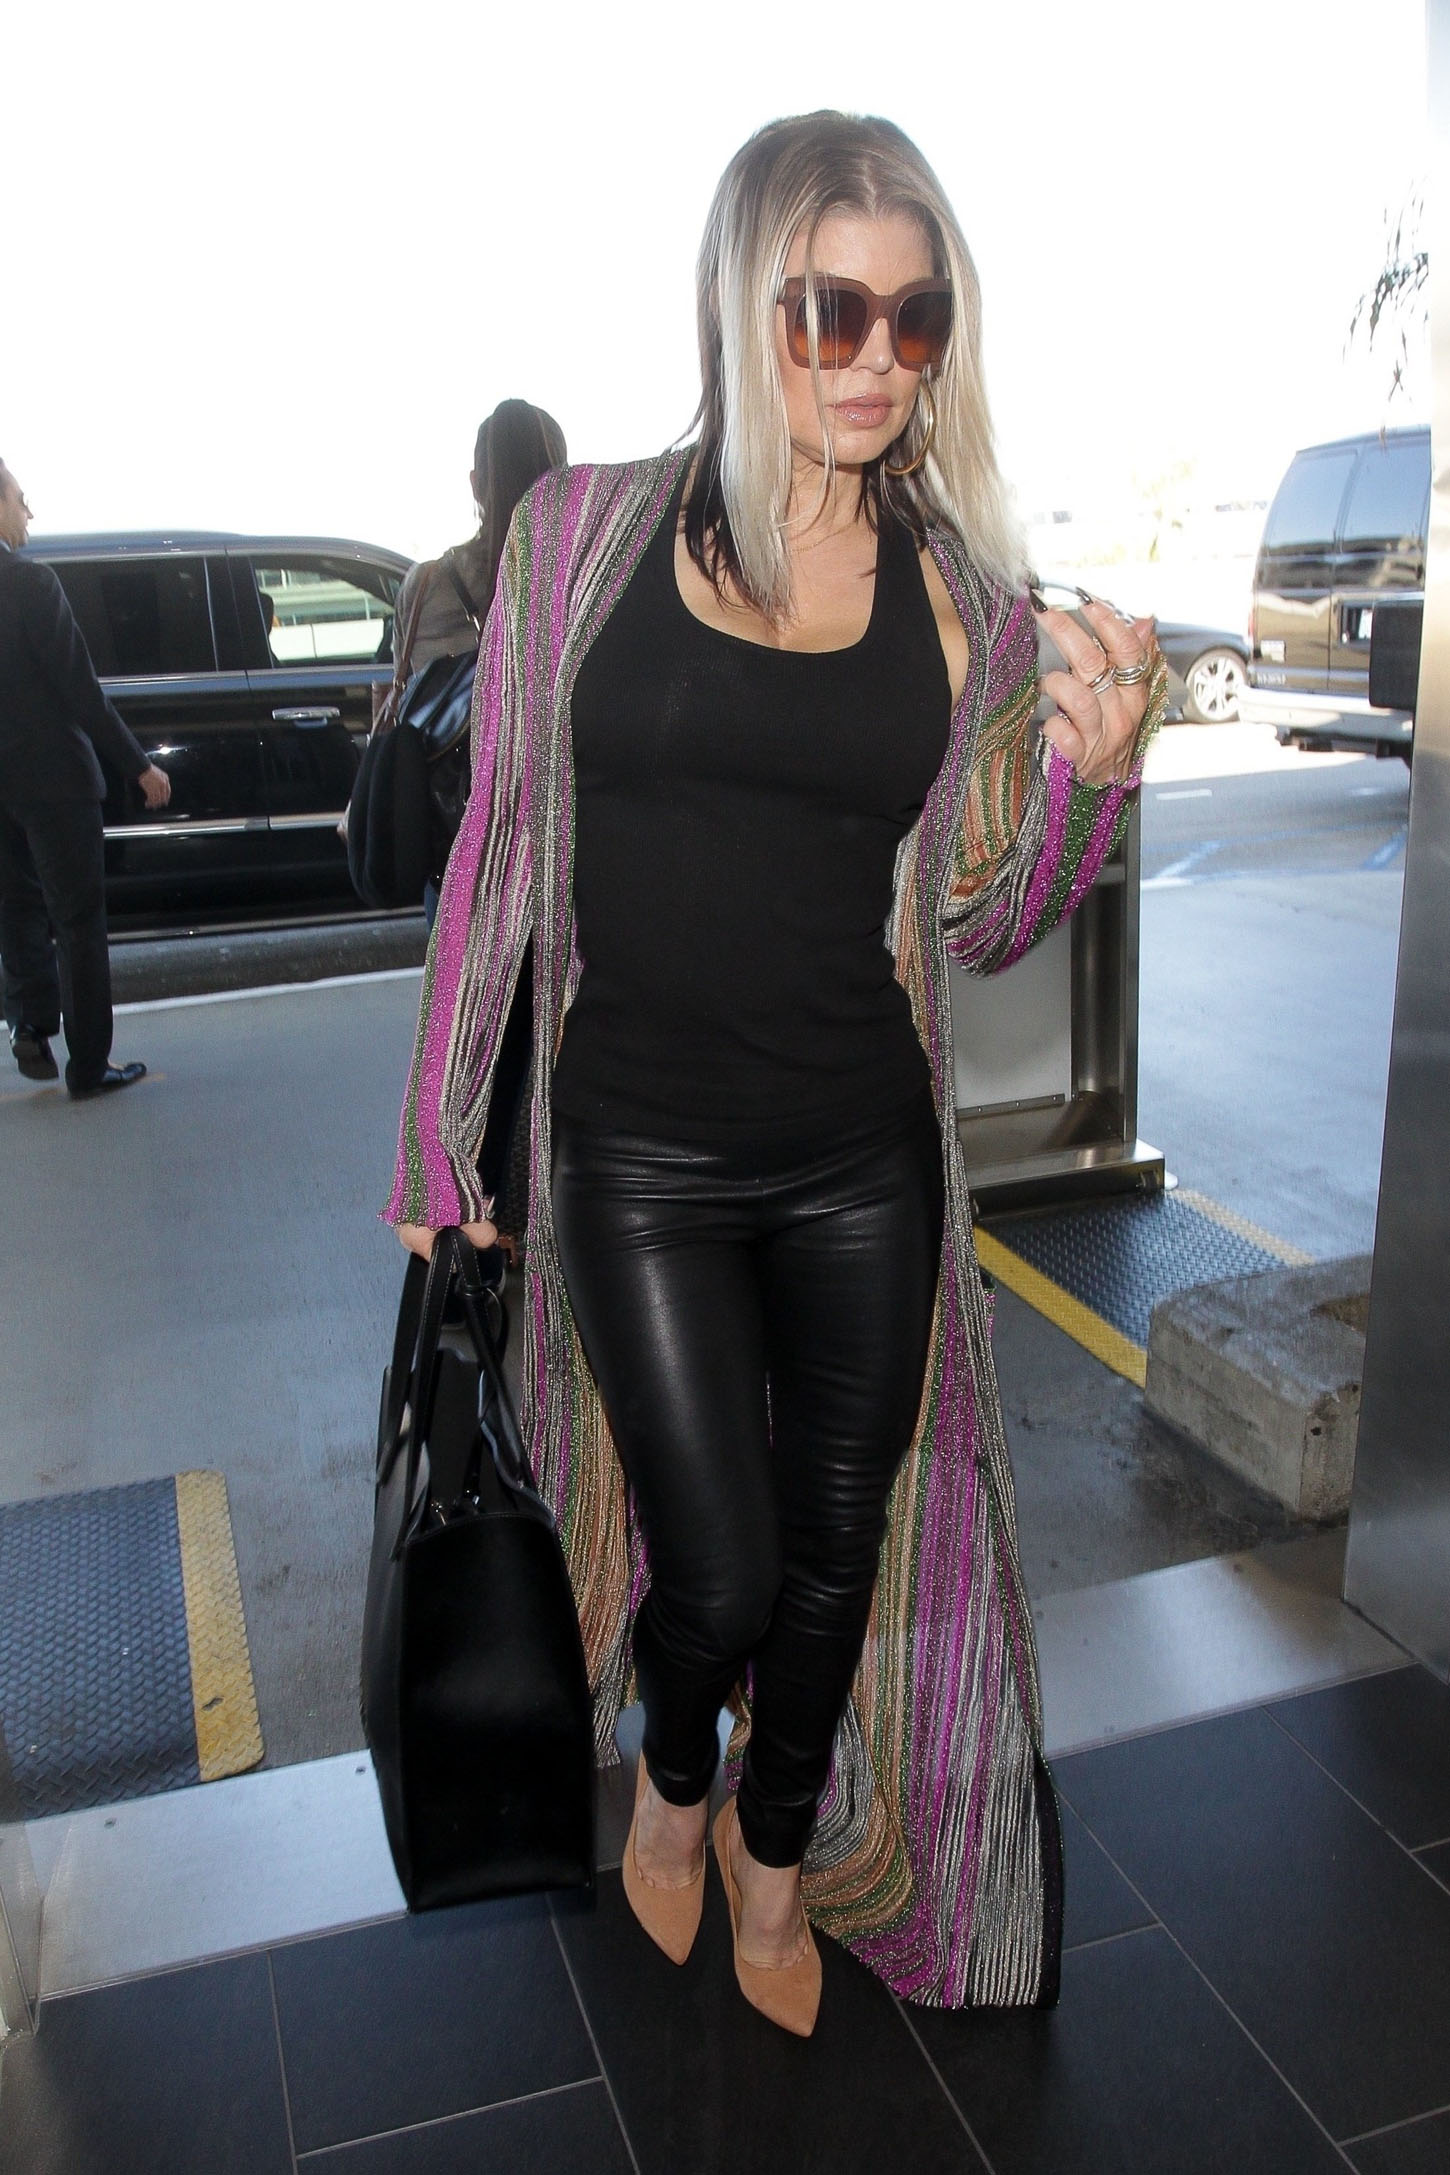 Los Angeles, CA  - Fergie cuts a sexy figure as we spot her arriving at LAX Airport ahead of a departing flight.  Pictured: Fergie   BACKGRID USA 18 OCTOBER 2017, Image: 353362352, License: Rights-managed, Restrictions: , Model Release: no, Credit line: Profimedia, AKM-GSI